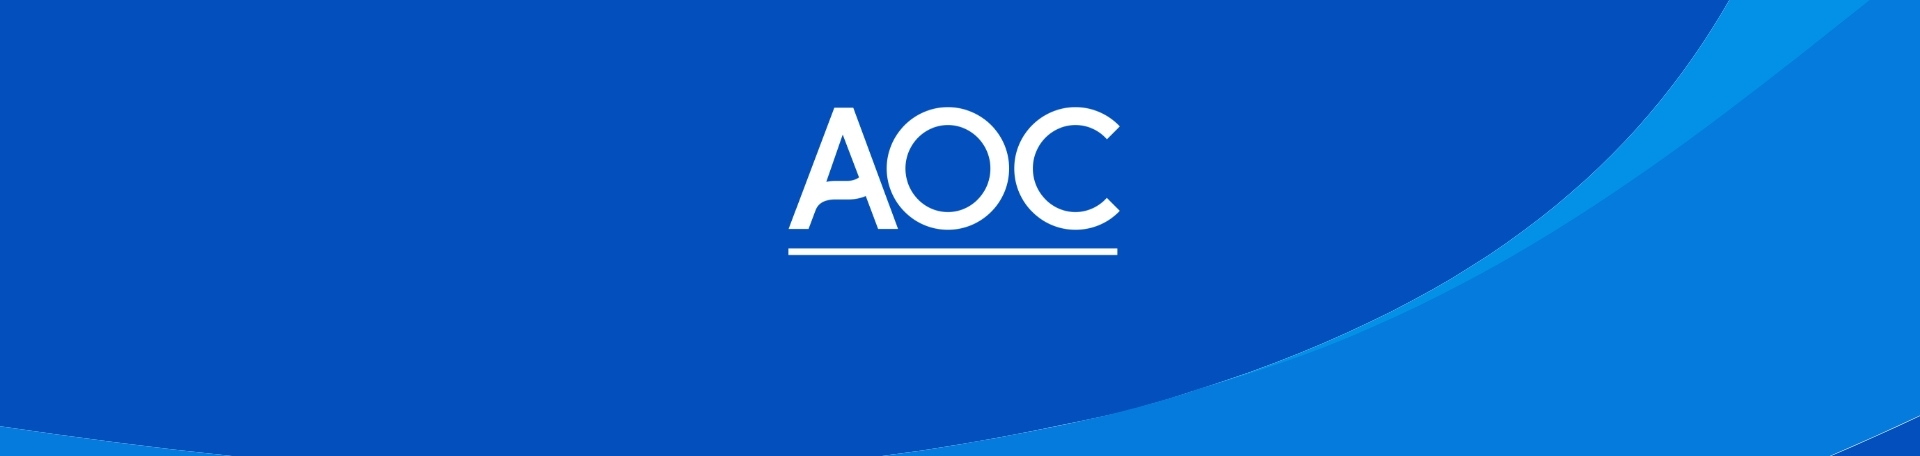 AOC announces Americas sales and marketing promotions